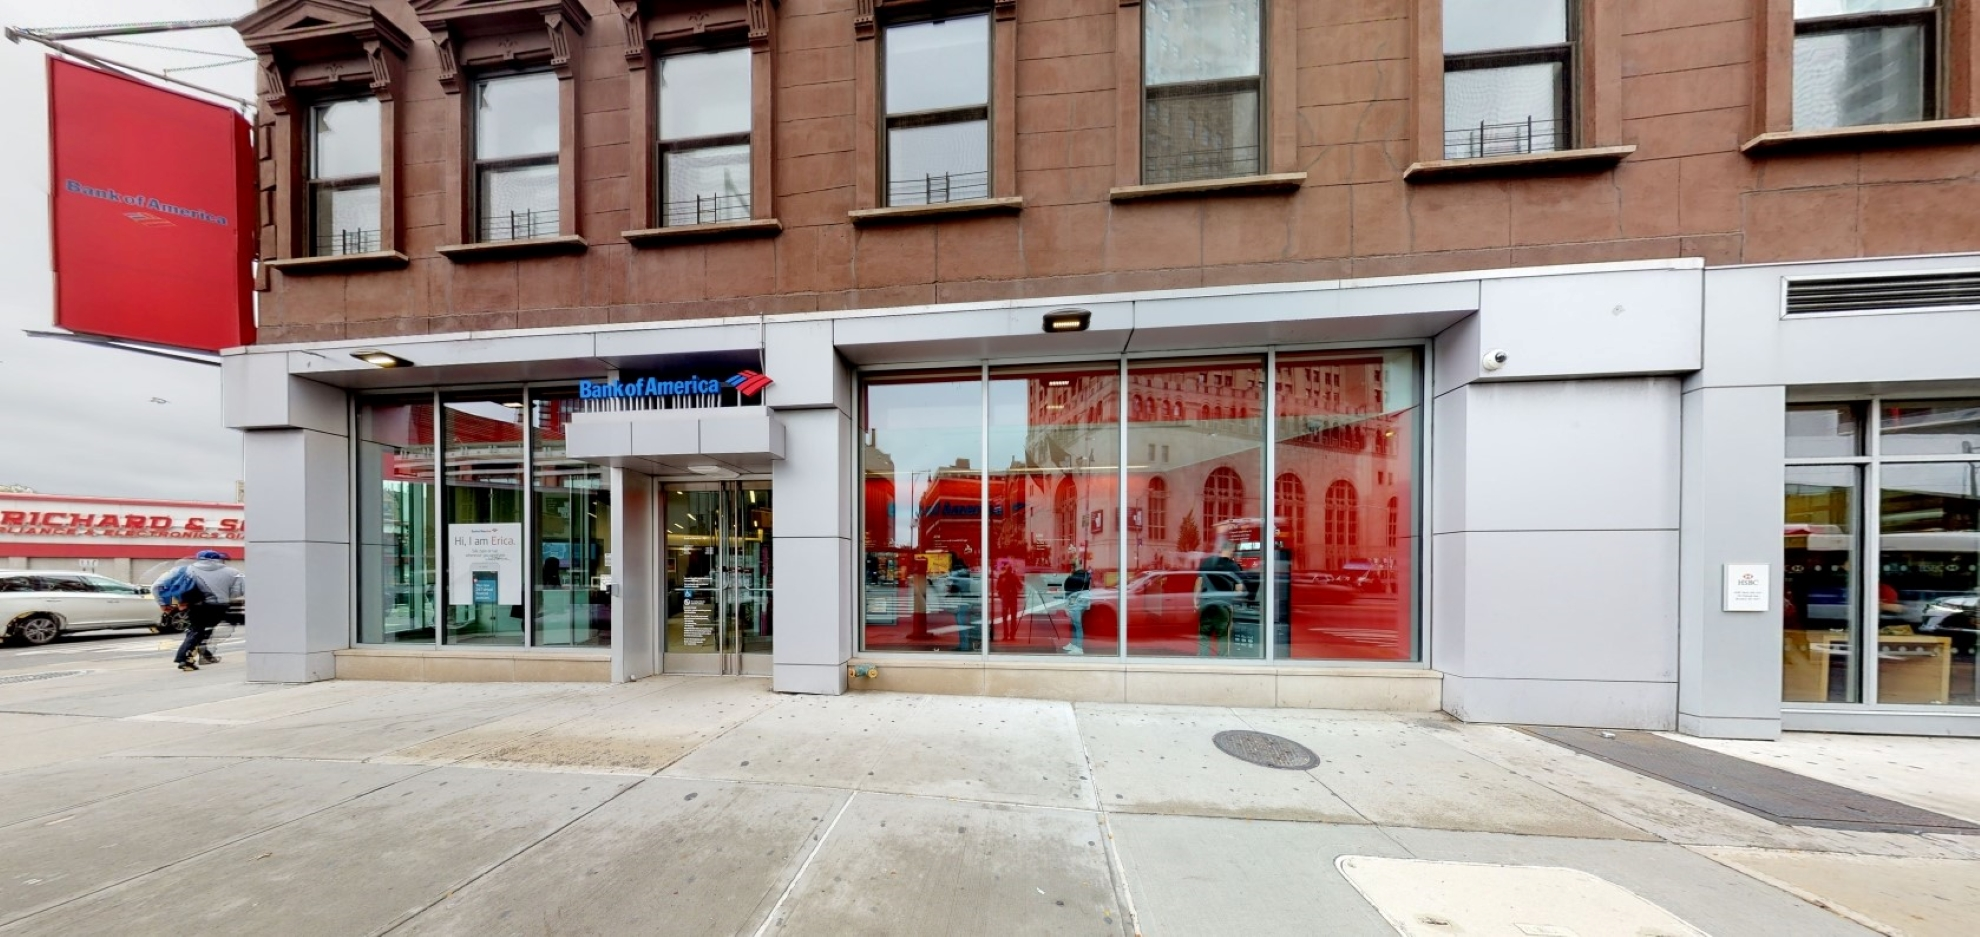 Bank of America financial center with walk-up ATM | 120 Flatbush Ave, Brooklyn, NY 11217